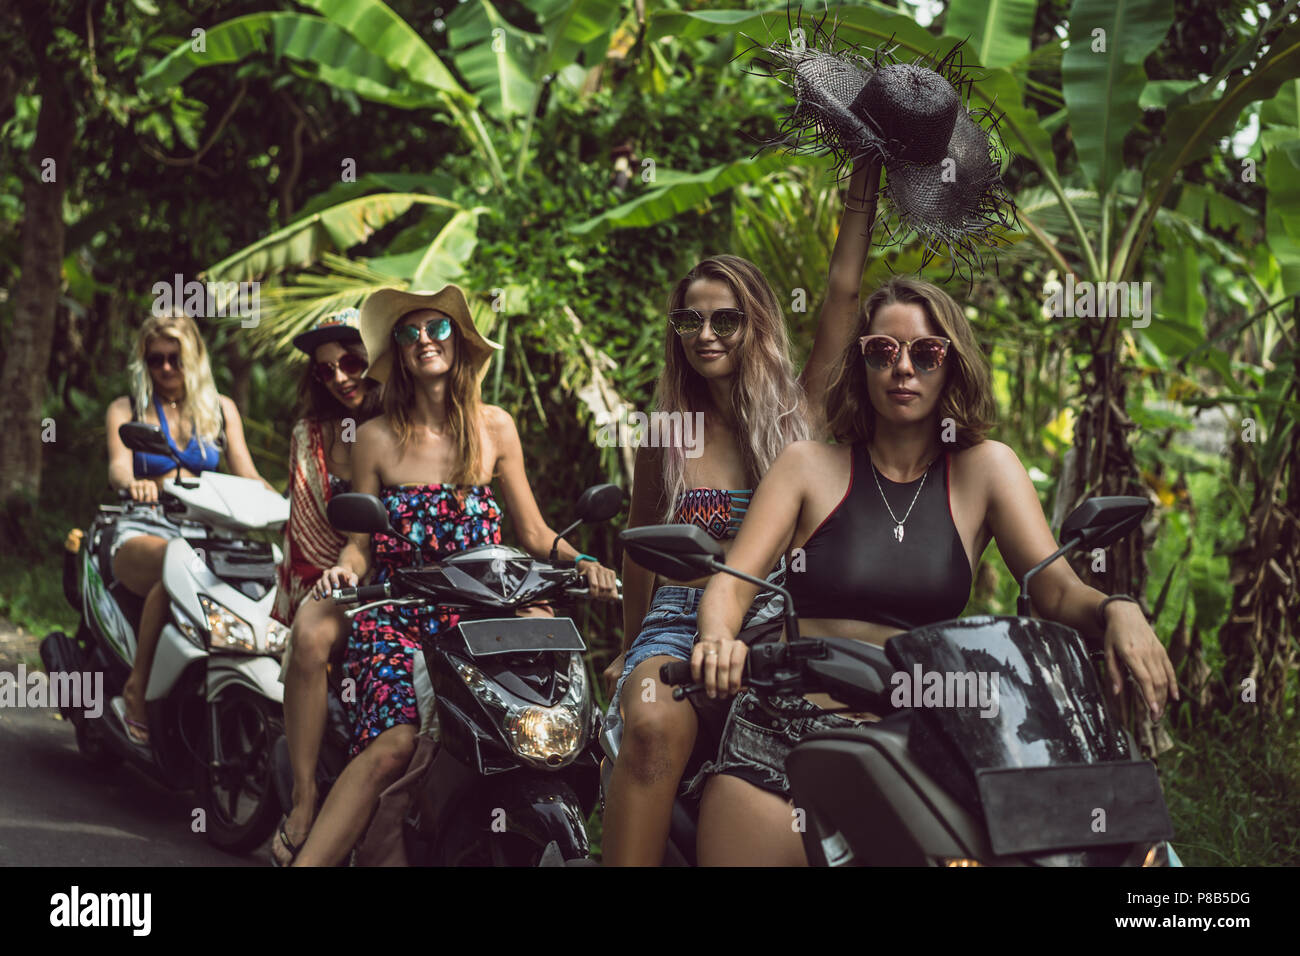 beautiful happy young women sitting on motorcycles in green jungles - Stock Image